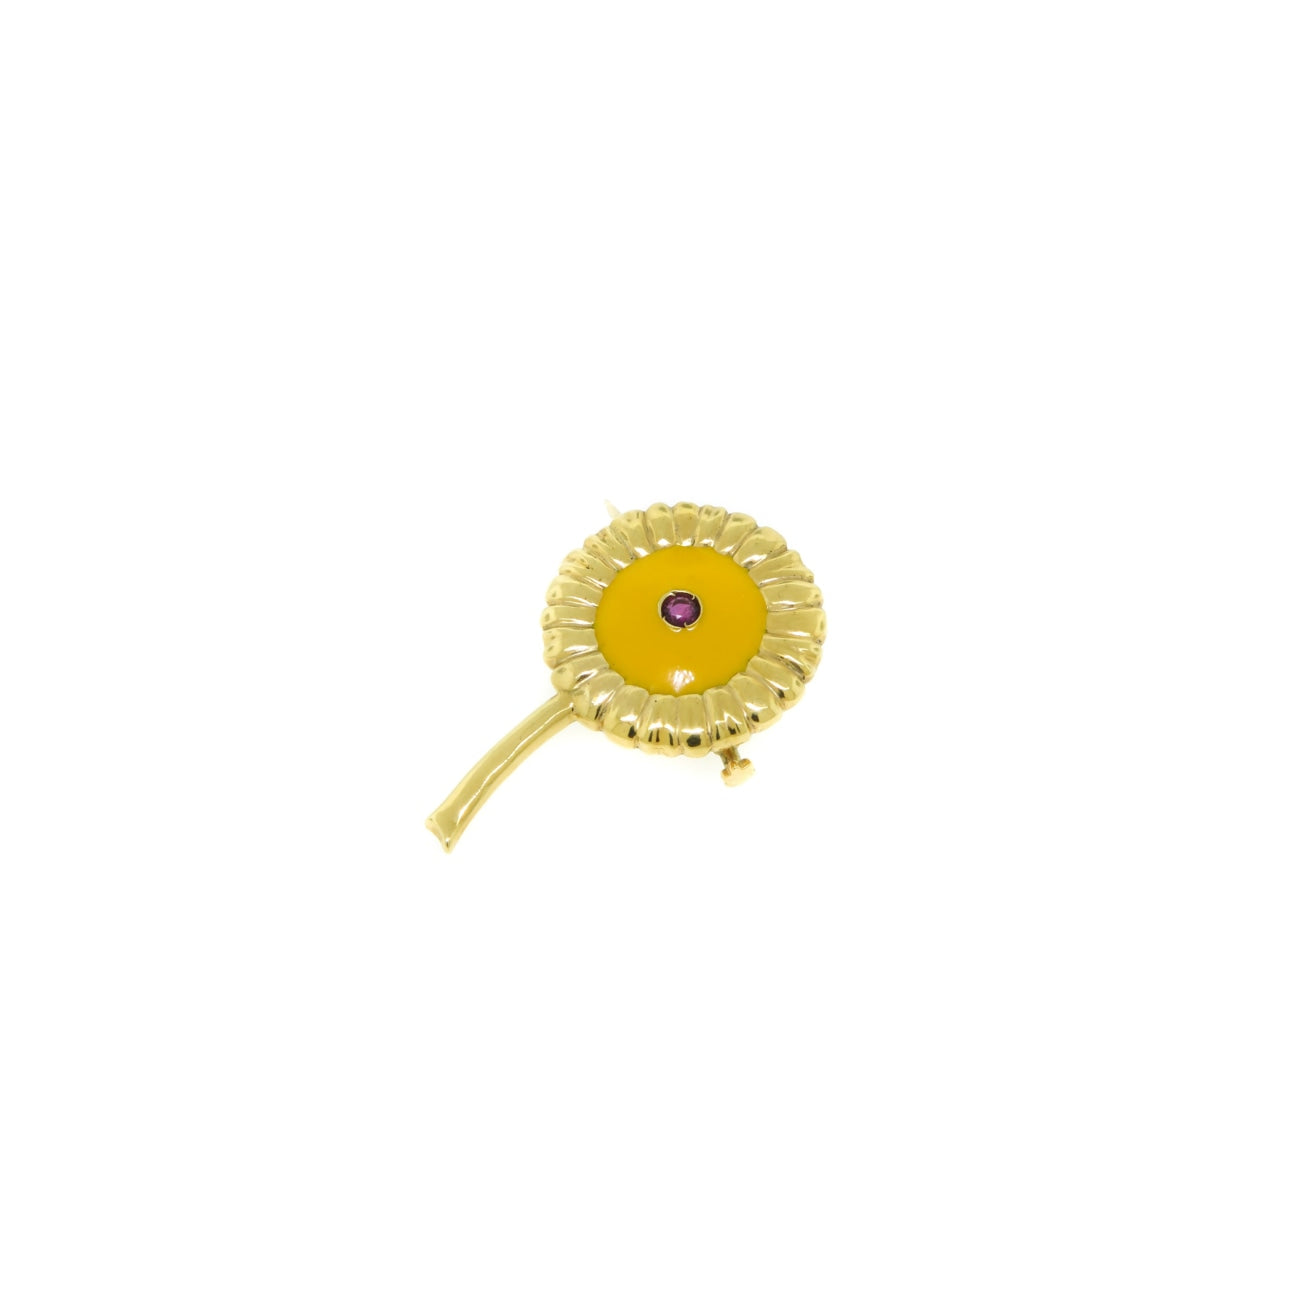 Manfredi Jewels Jewelry - 18k Sunflower Brooch by Manfredi | Manfredi Jewels